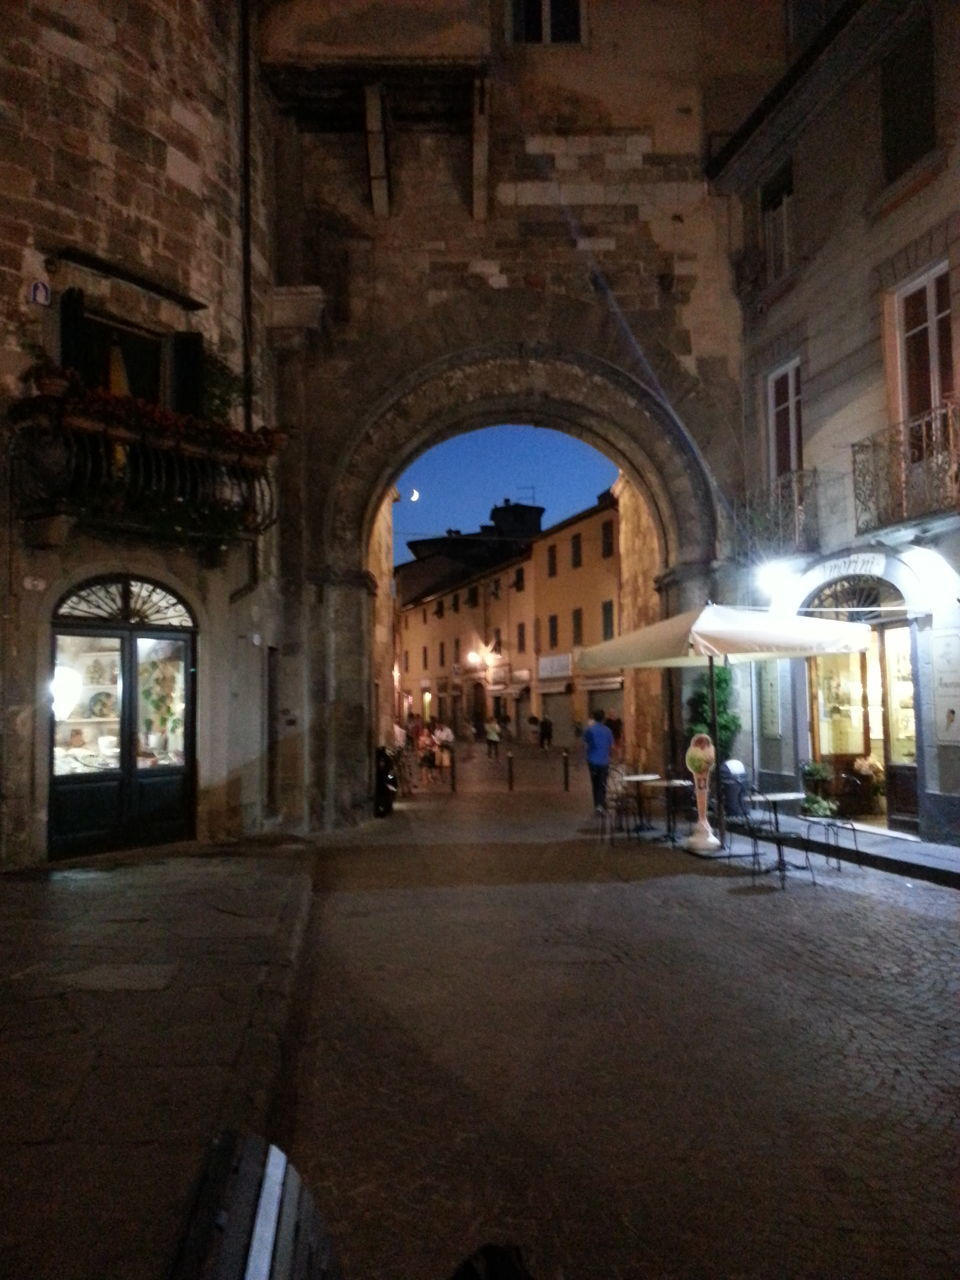 architecture, arch, built structure, history, illuminated, night, building exterior, outdoors, no people